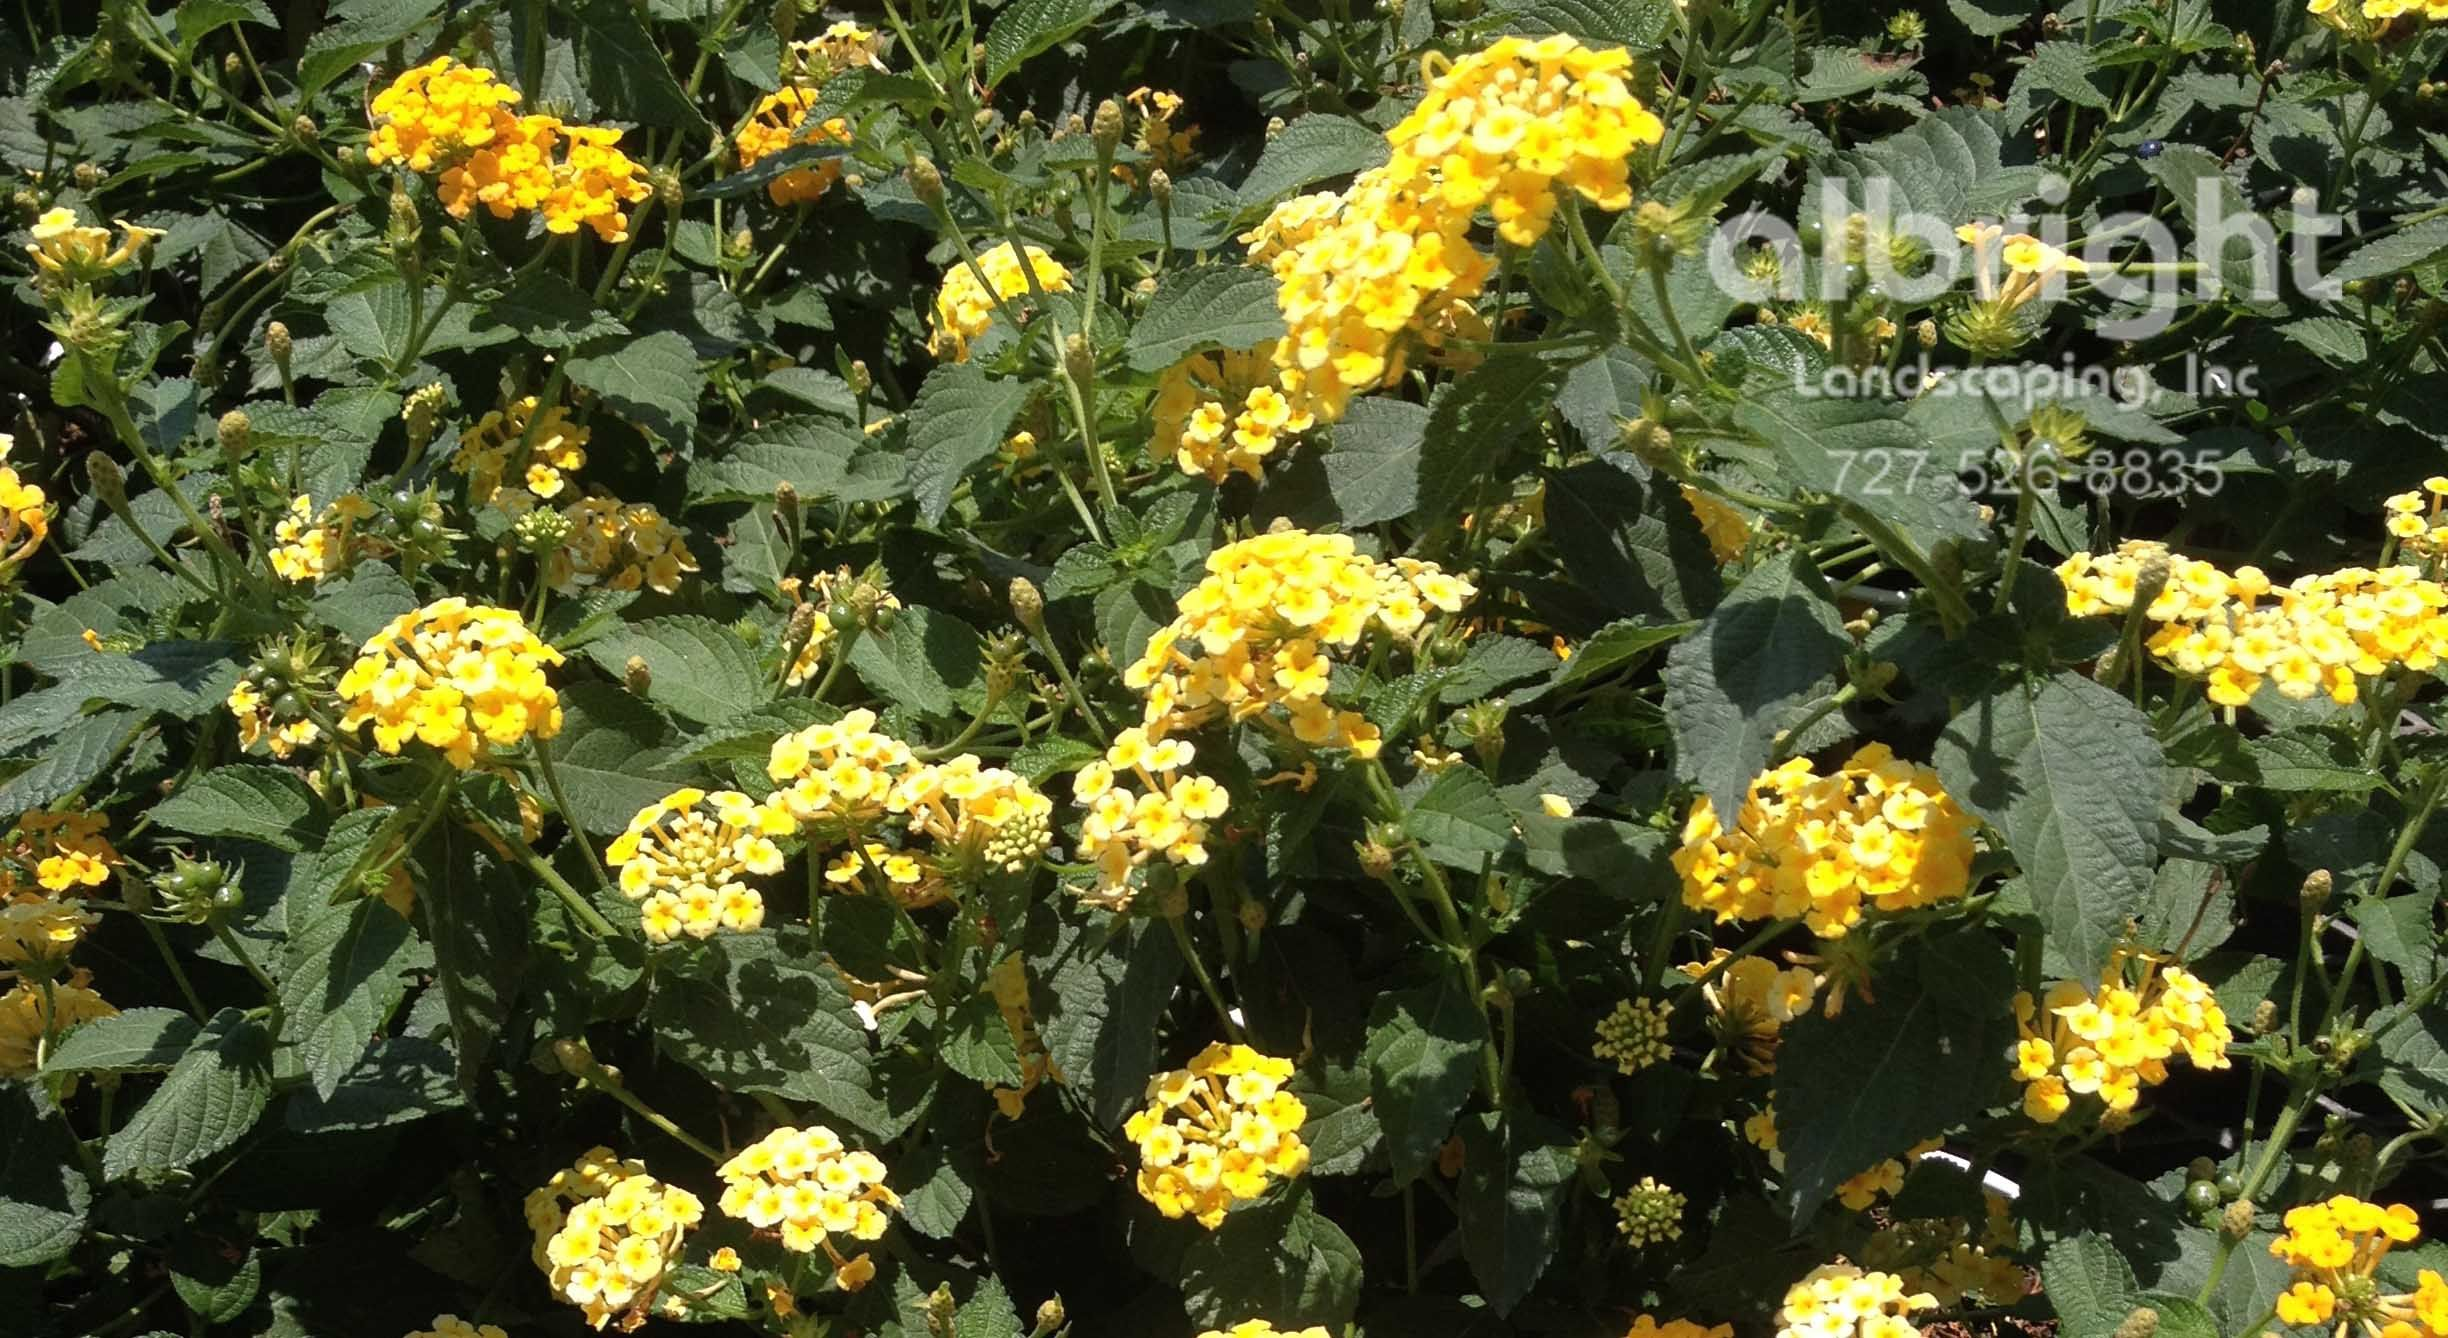 Lantana a hardy ground cover in mostly sunny locations with lots